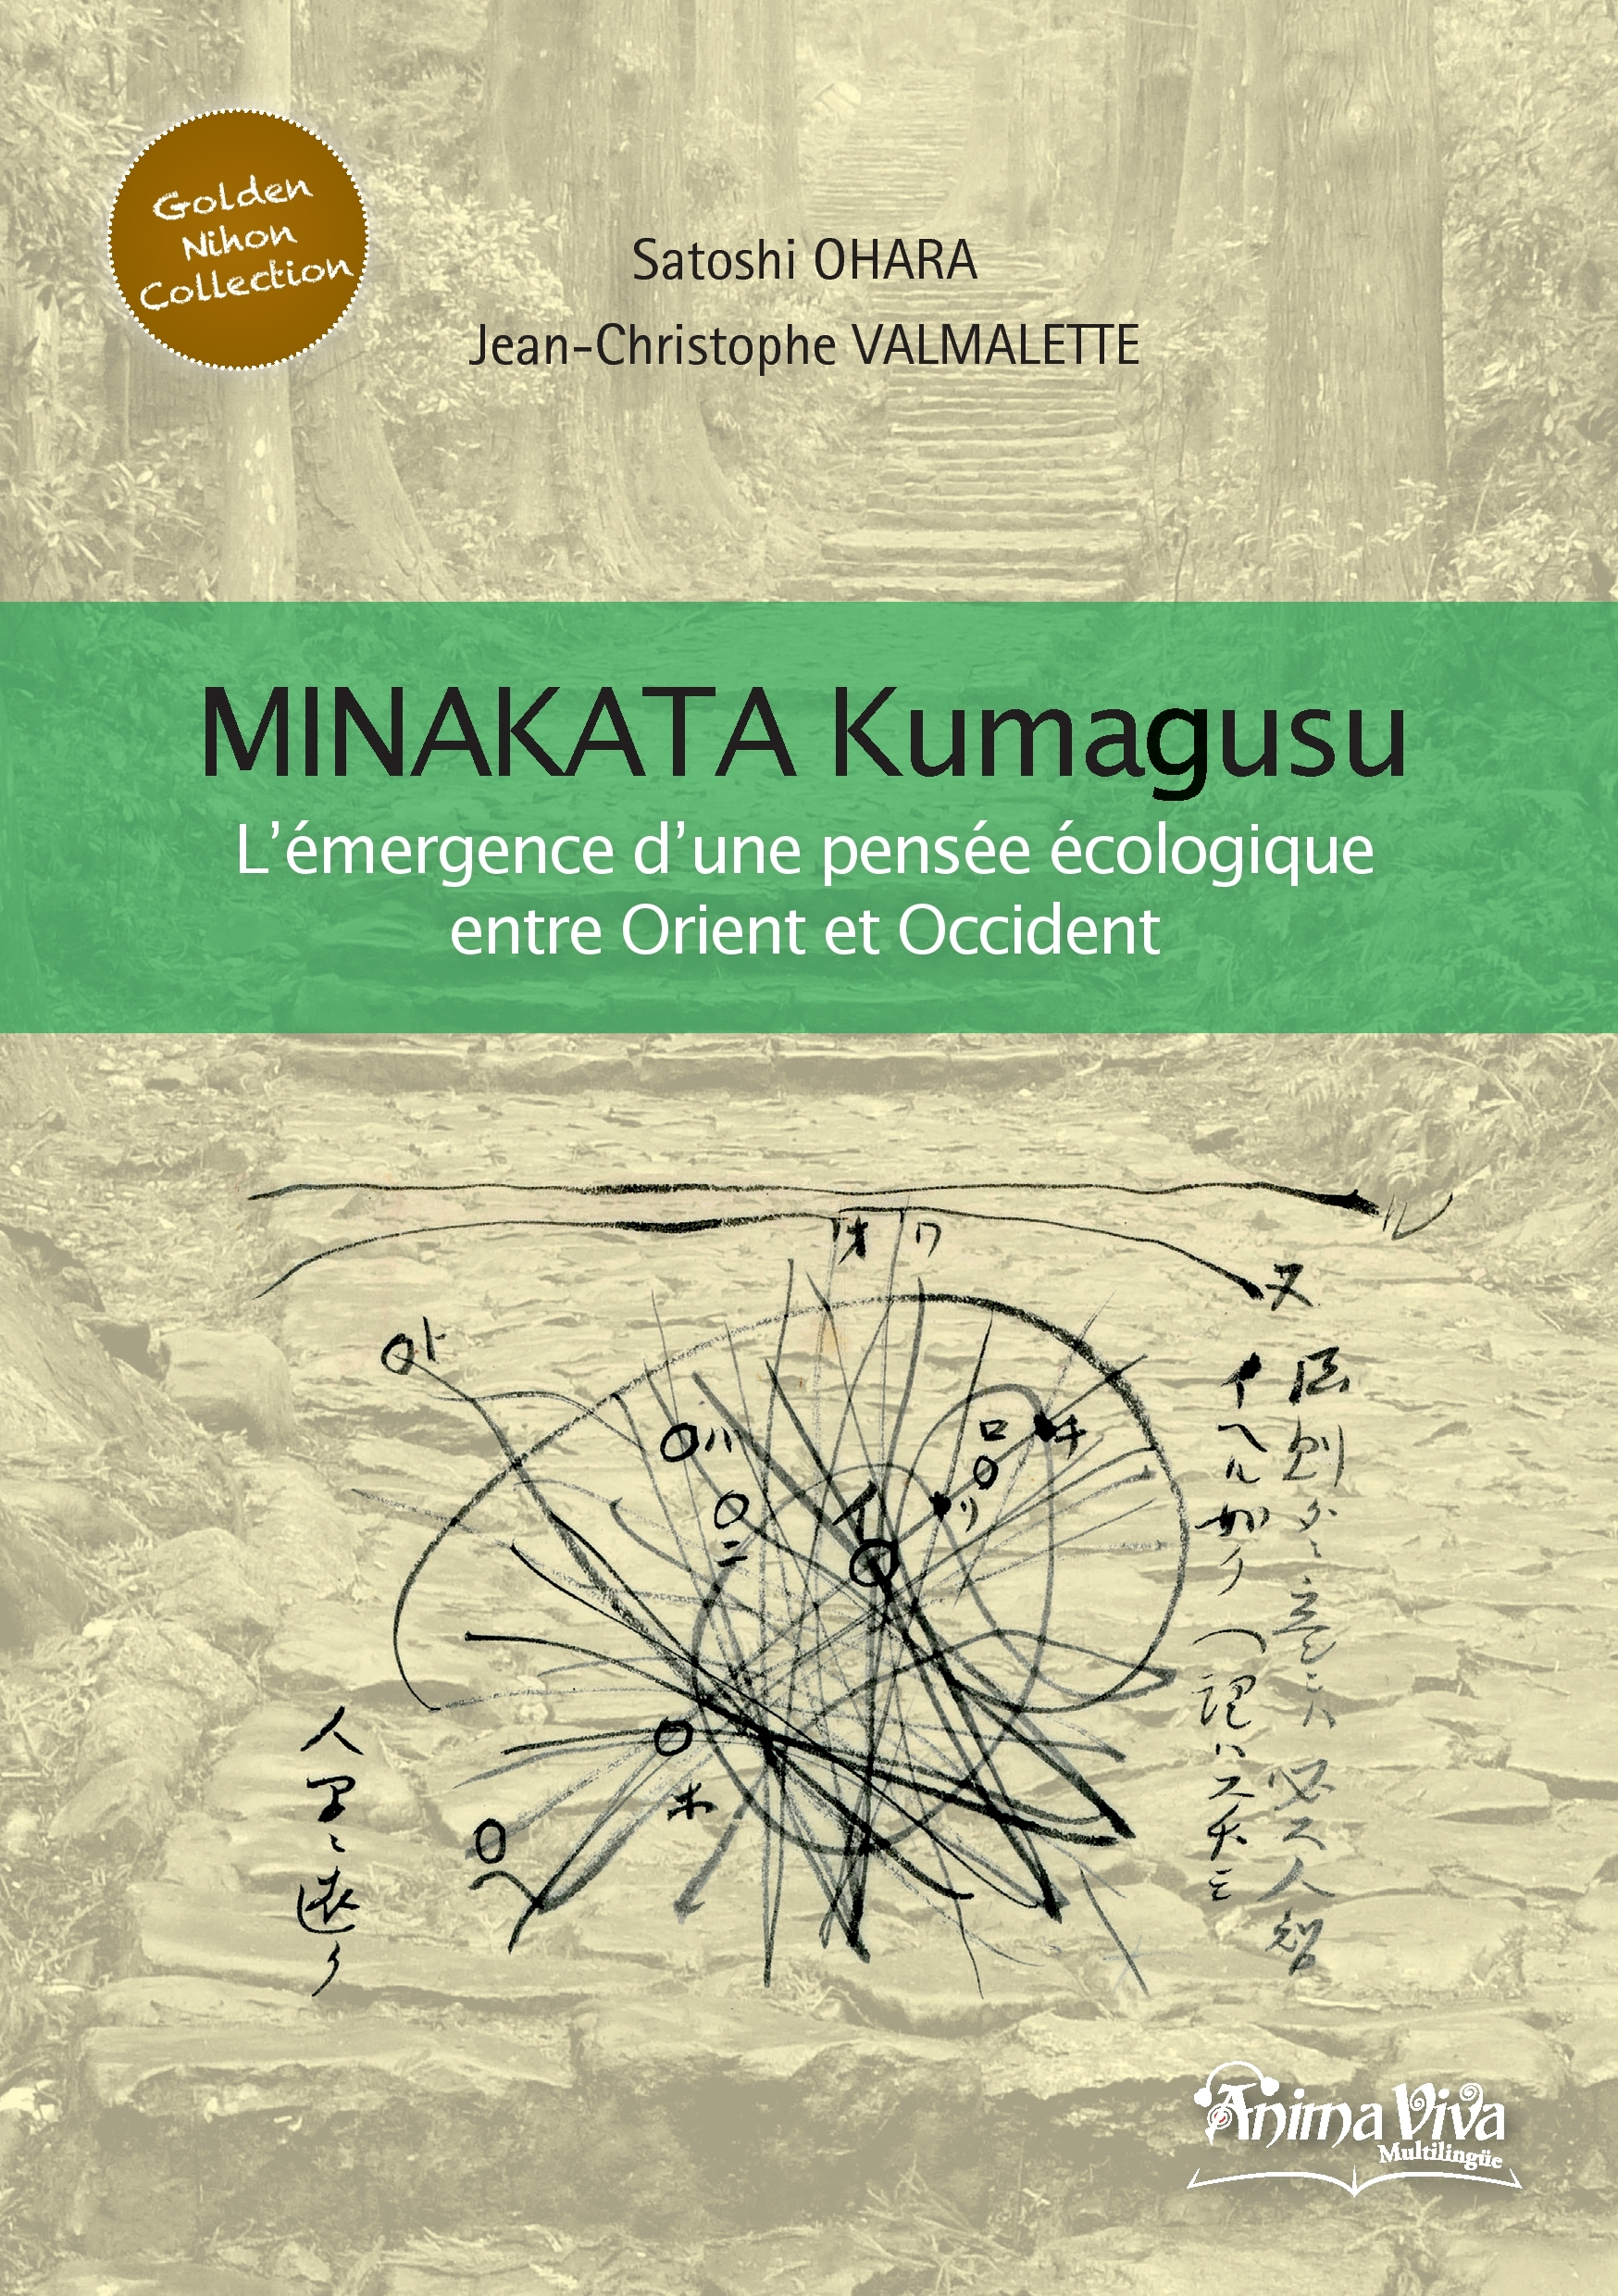 GOLDEN NIHON COLLECTION - T04 - MINAKATA KUMAGUSU - L'EMERGENCE D'UNE PENSEE ECOLOGIQUE ENTRE ORIENT